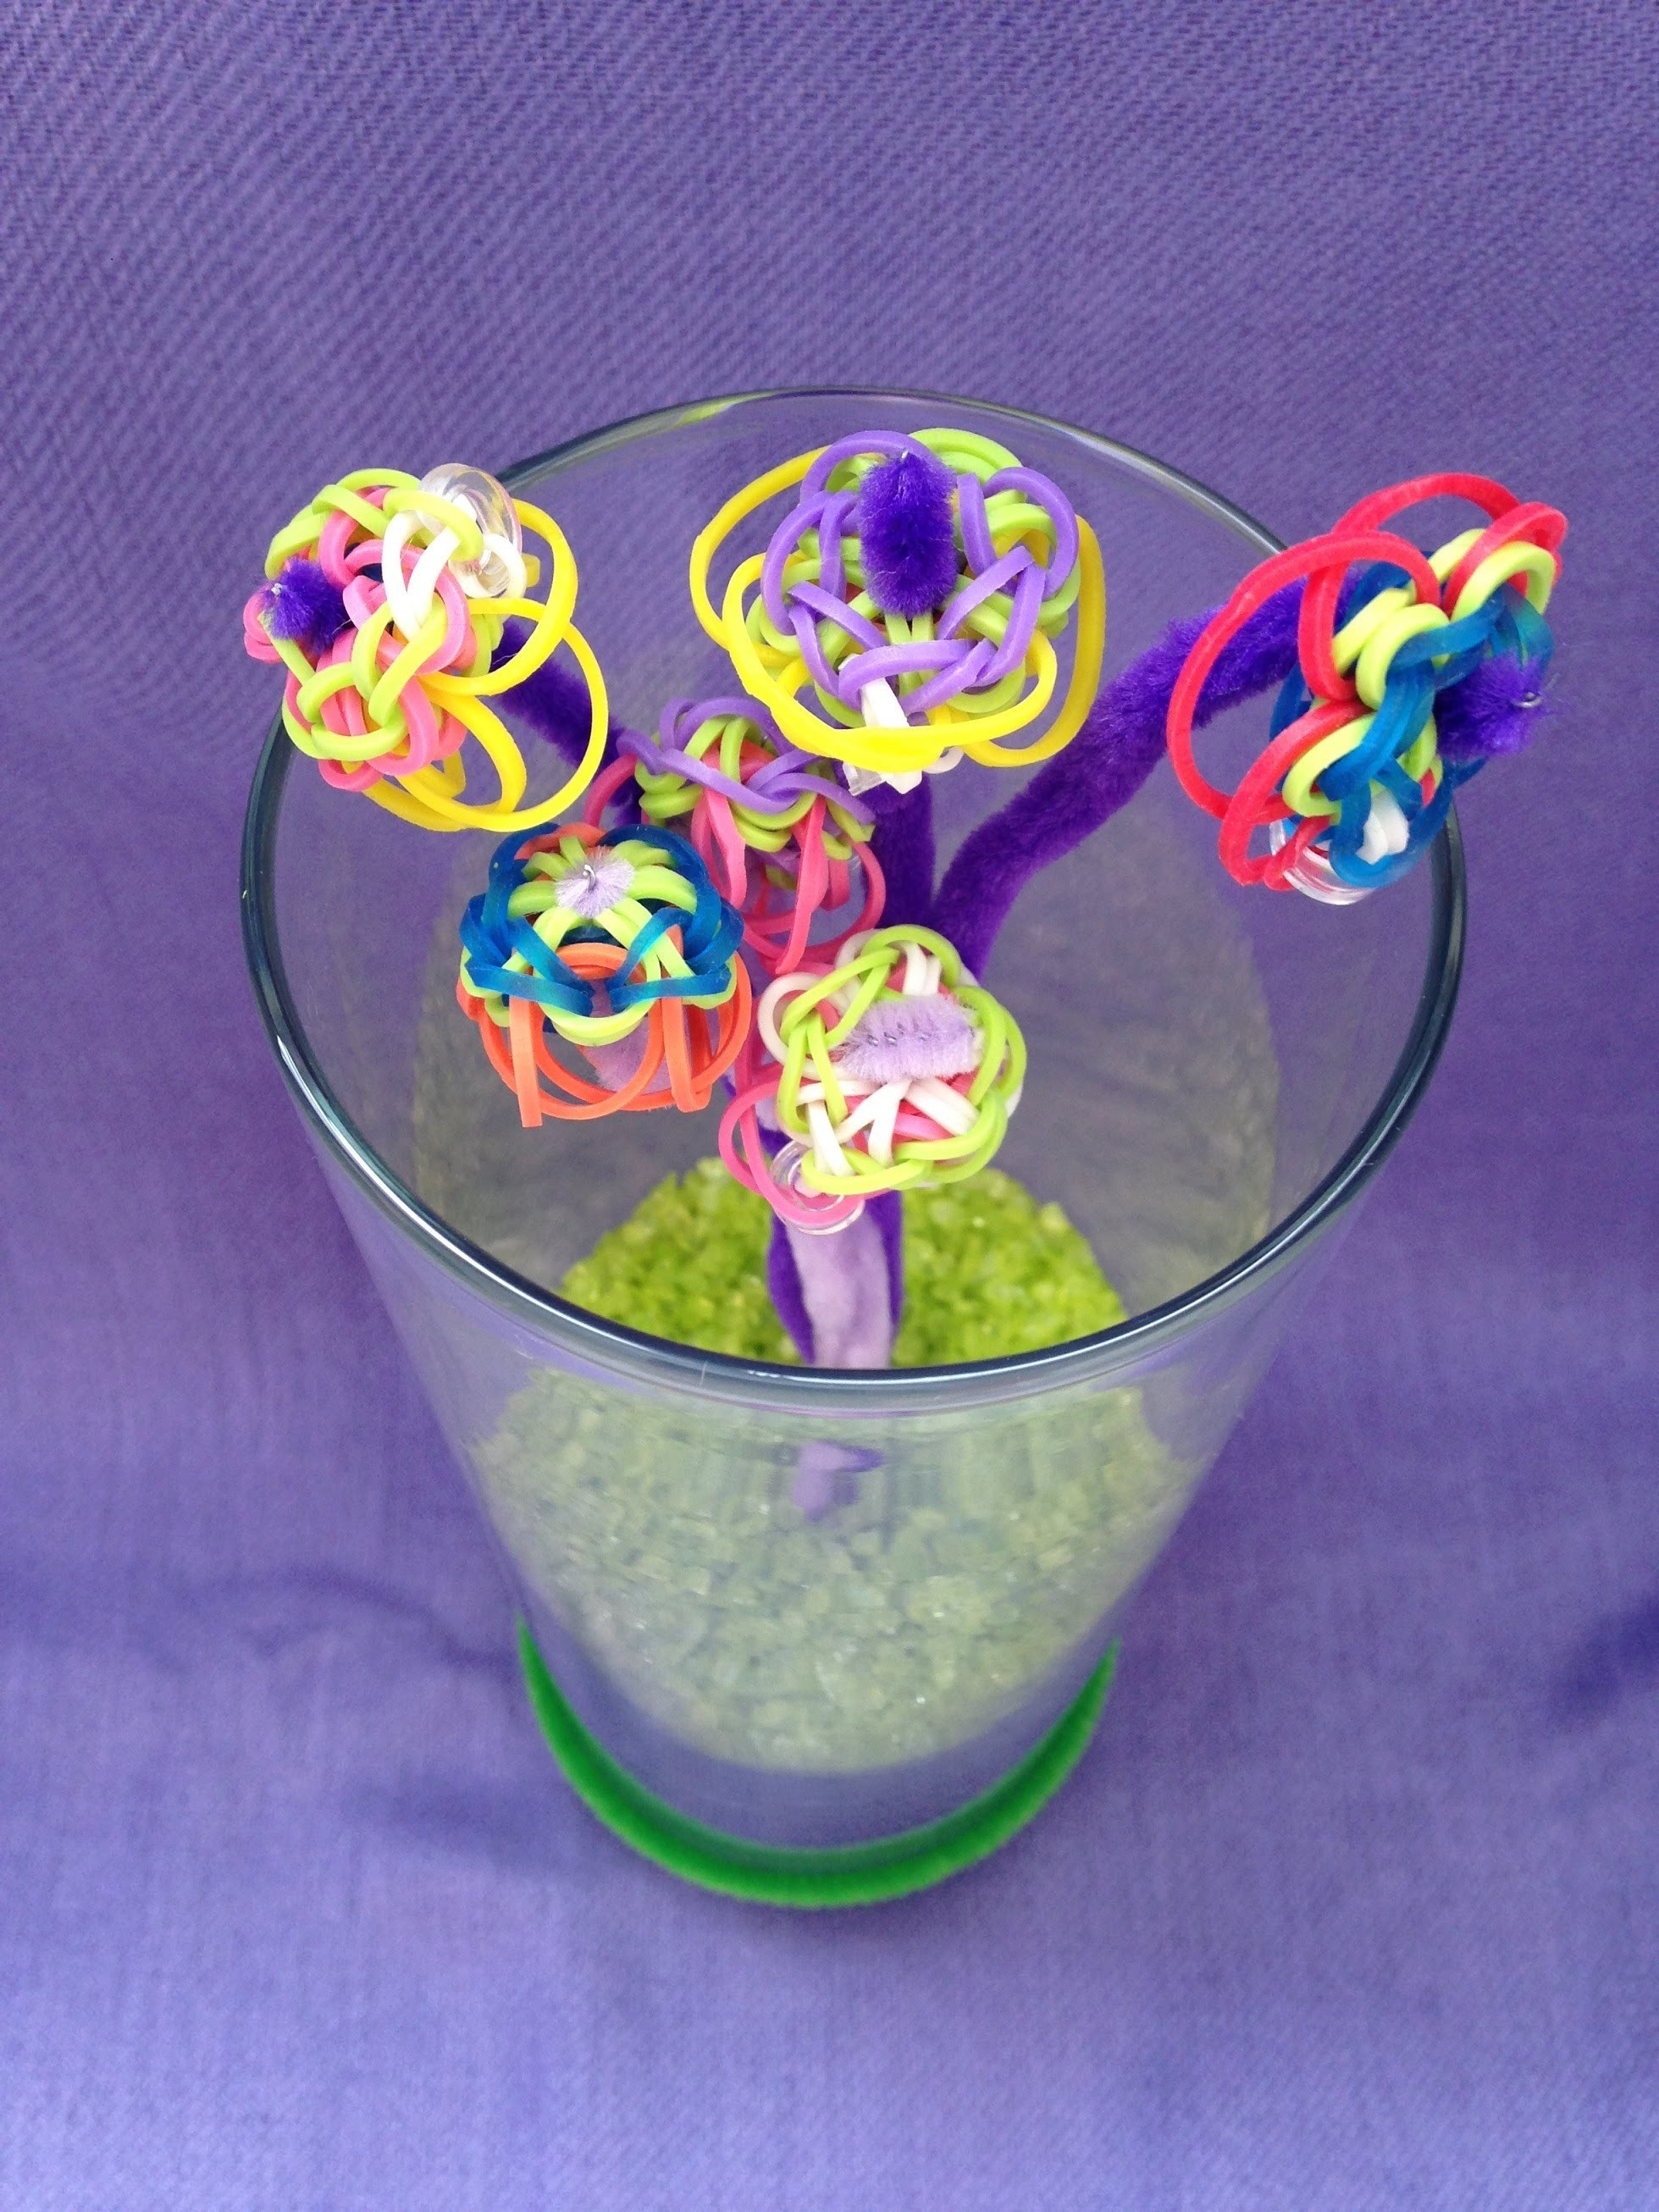 Rainbow Loom Bracelet - Bloom Charms - easy to make great Mother's day gift idea